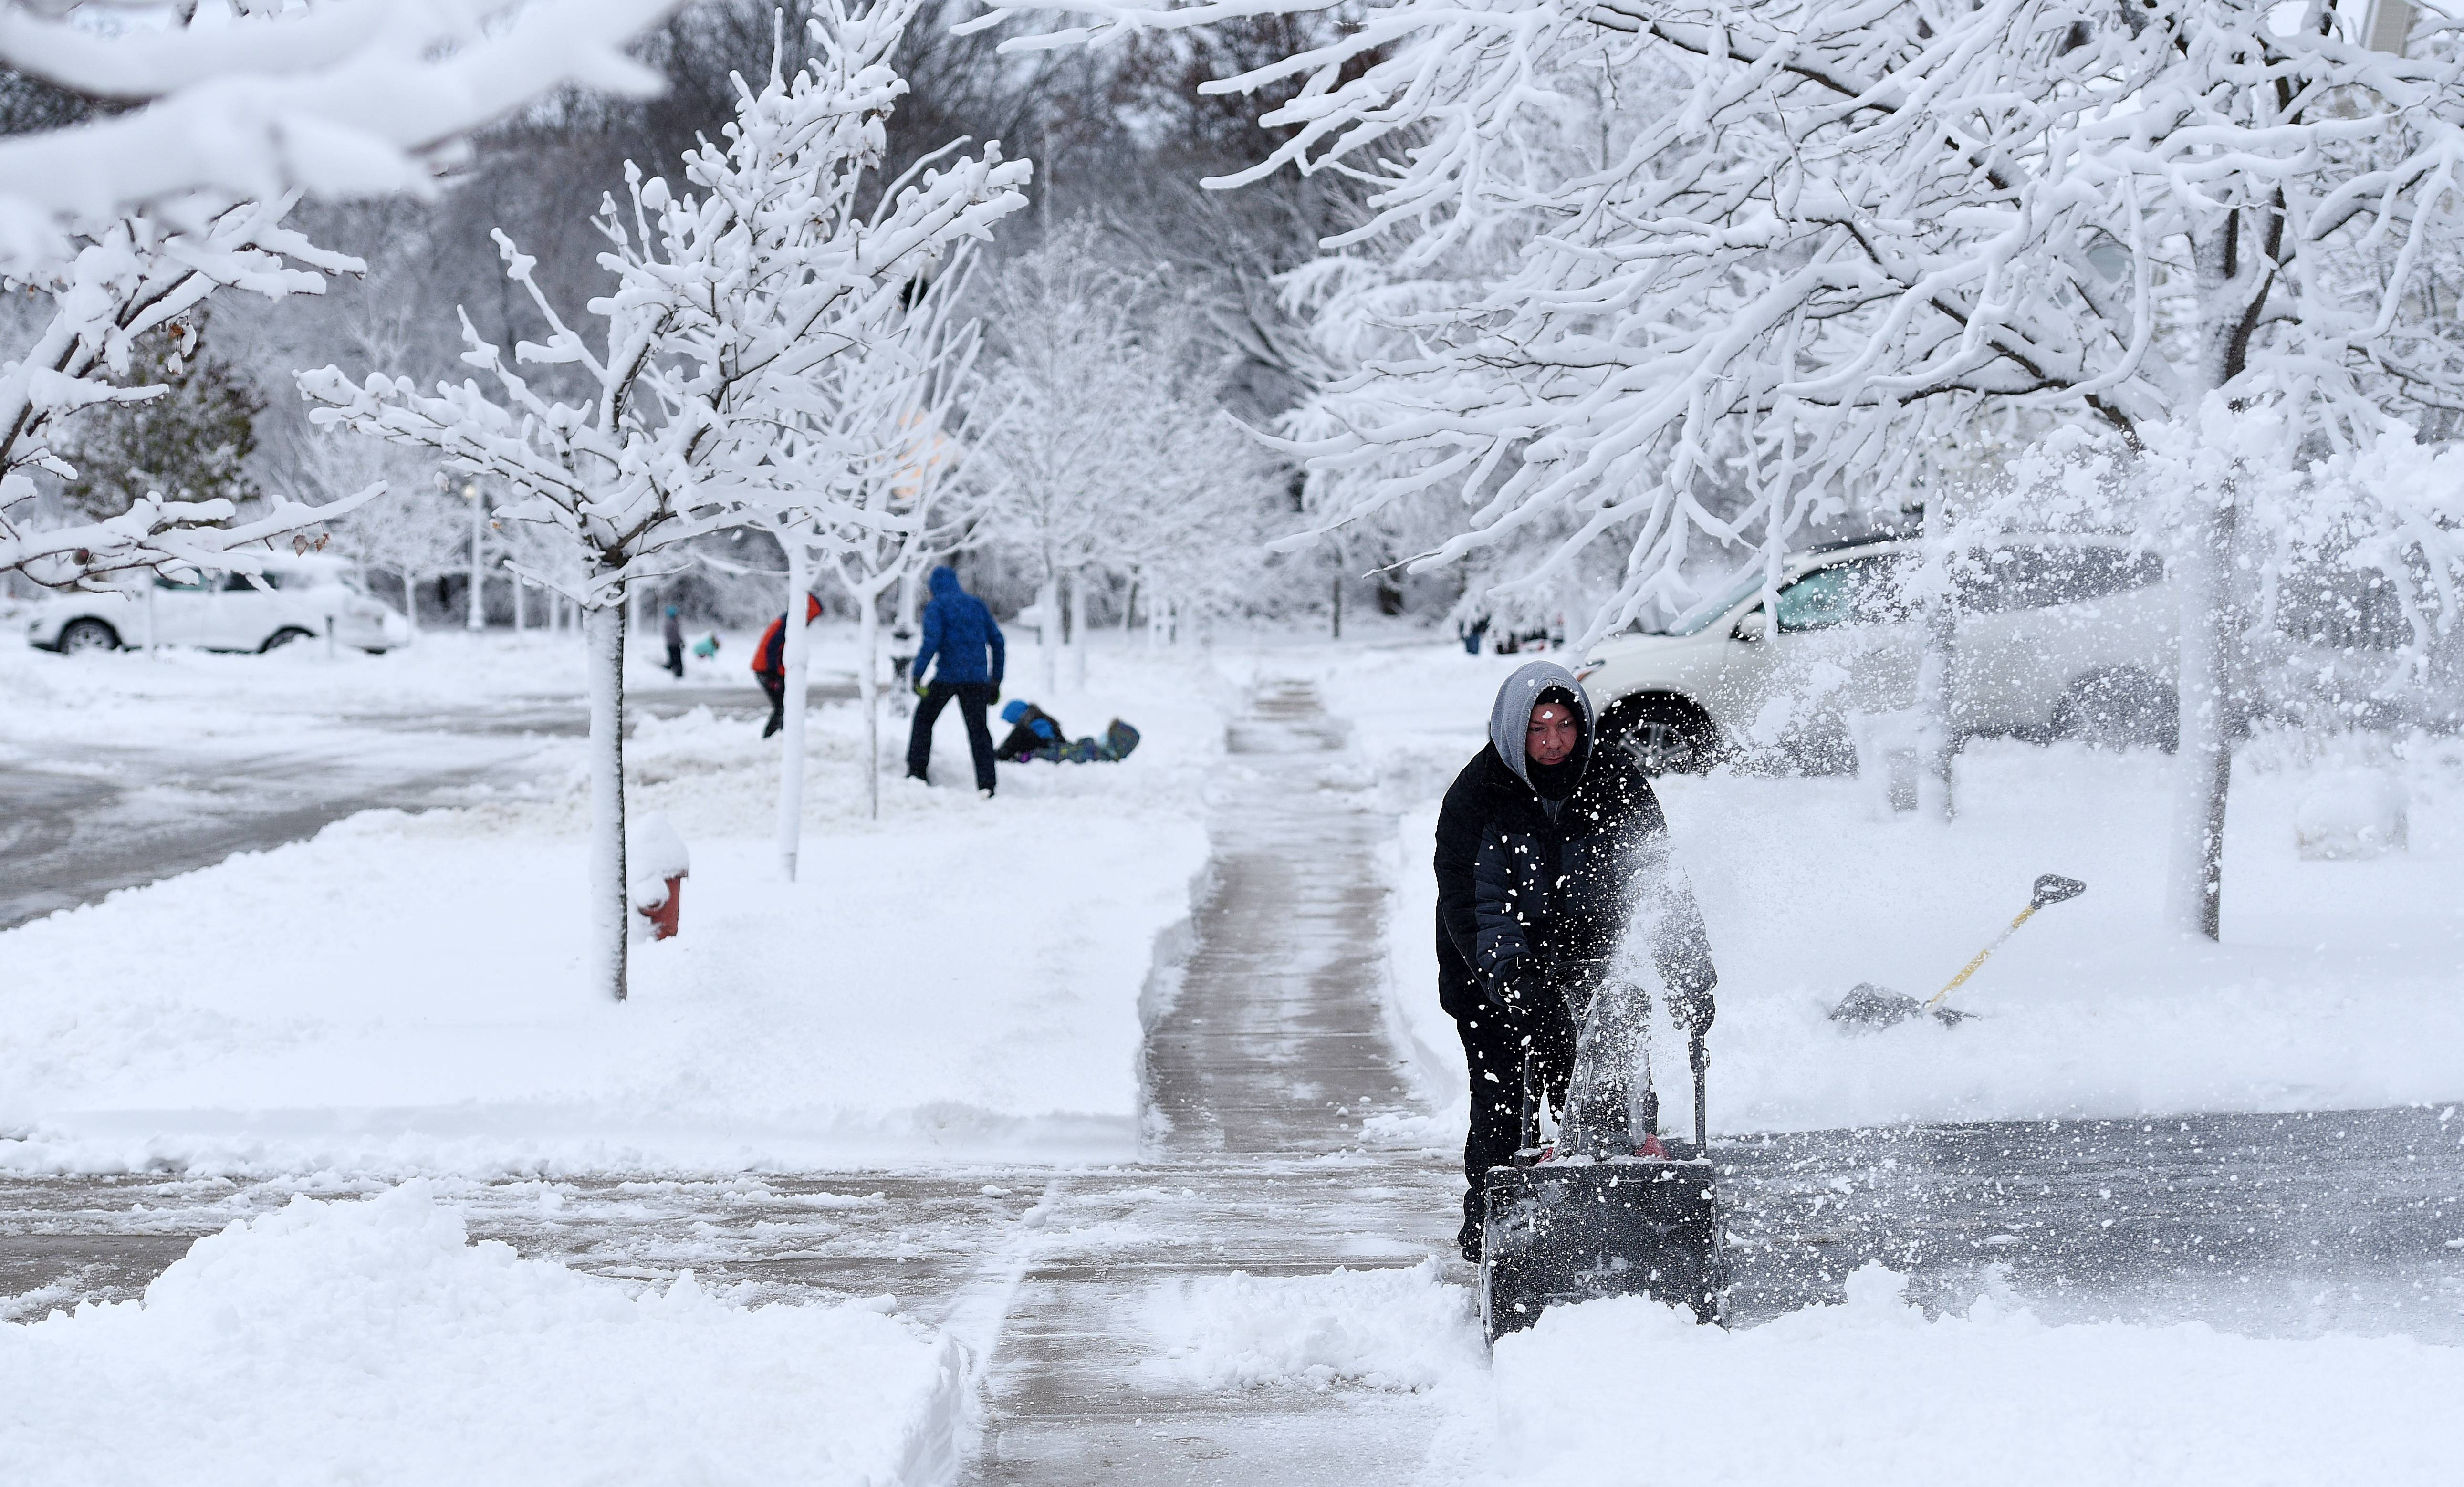 Snow's wrath: bad roads, closed schools, canceled flights